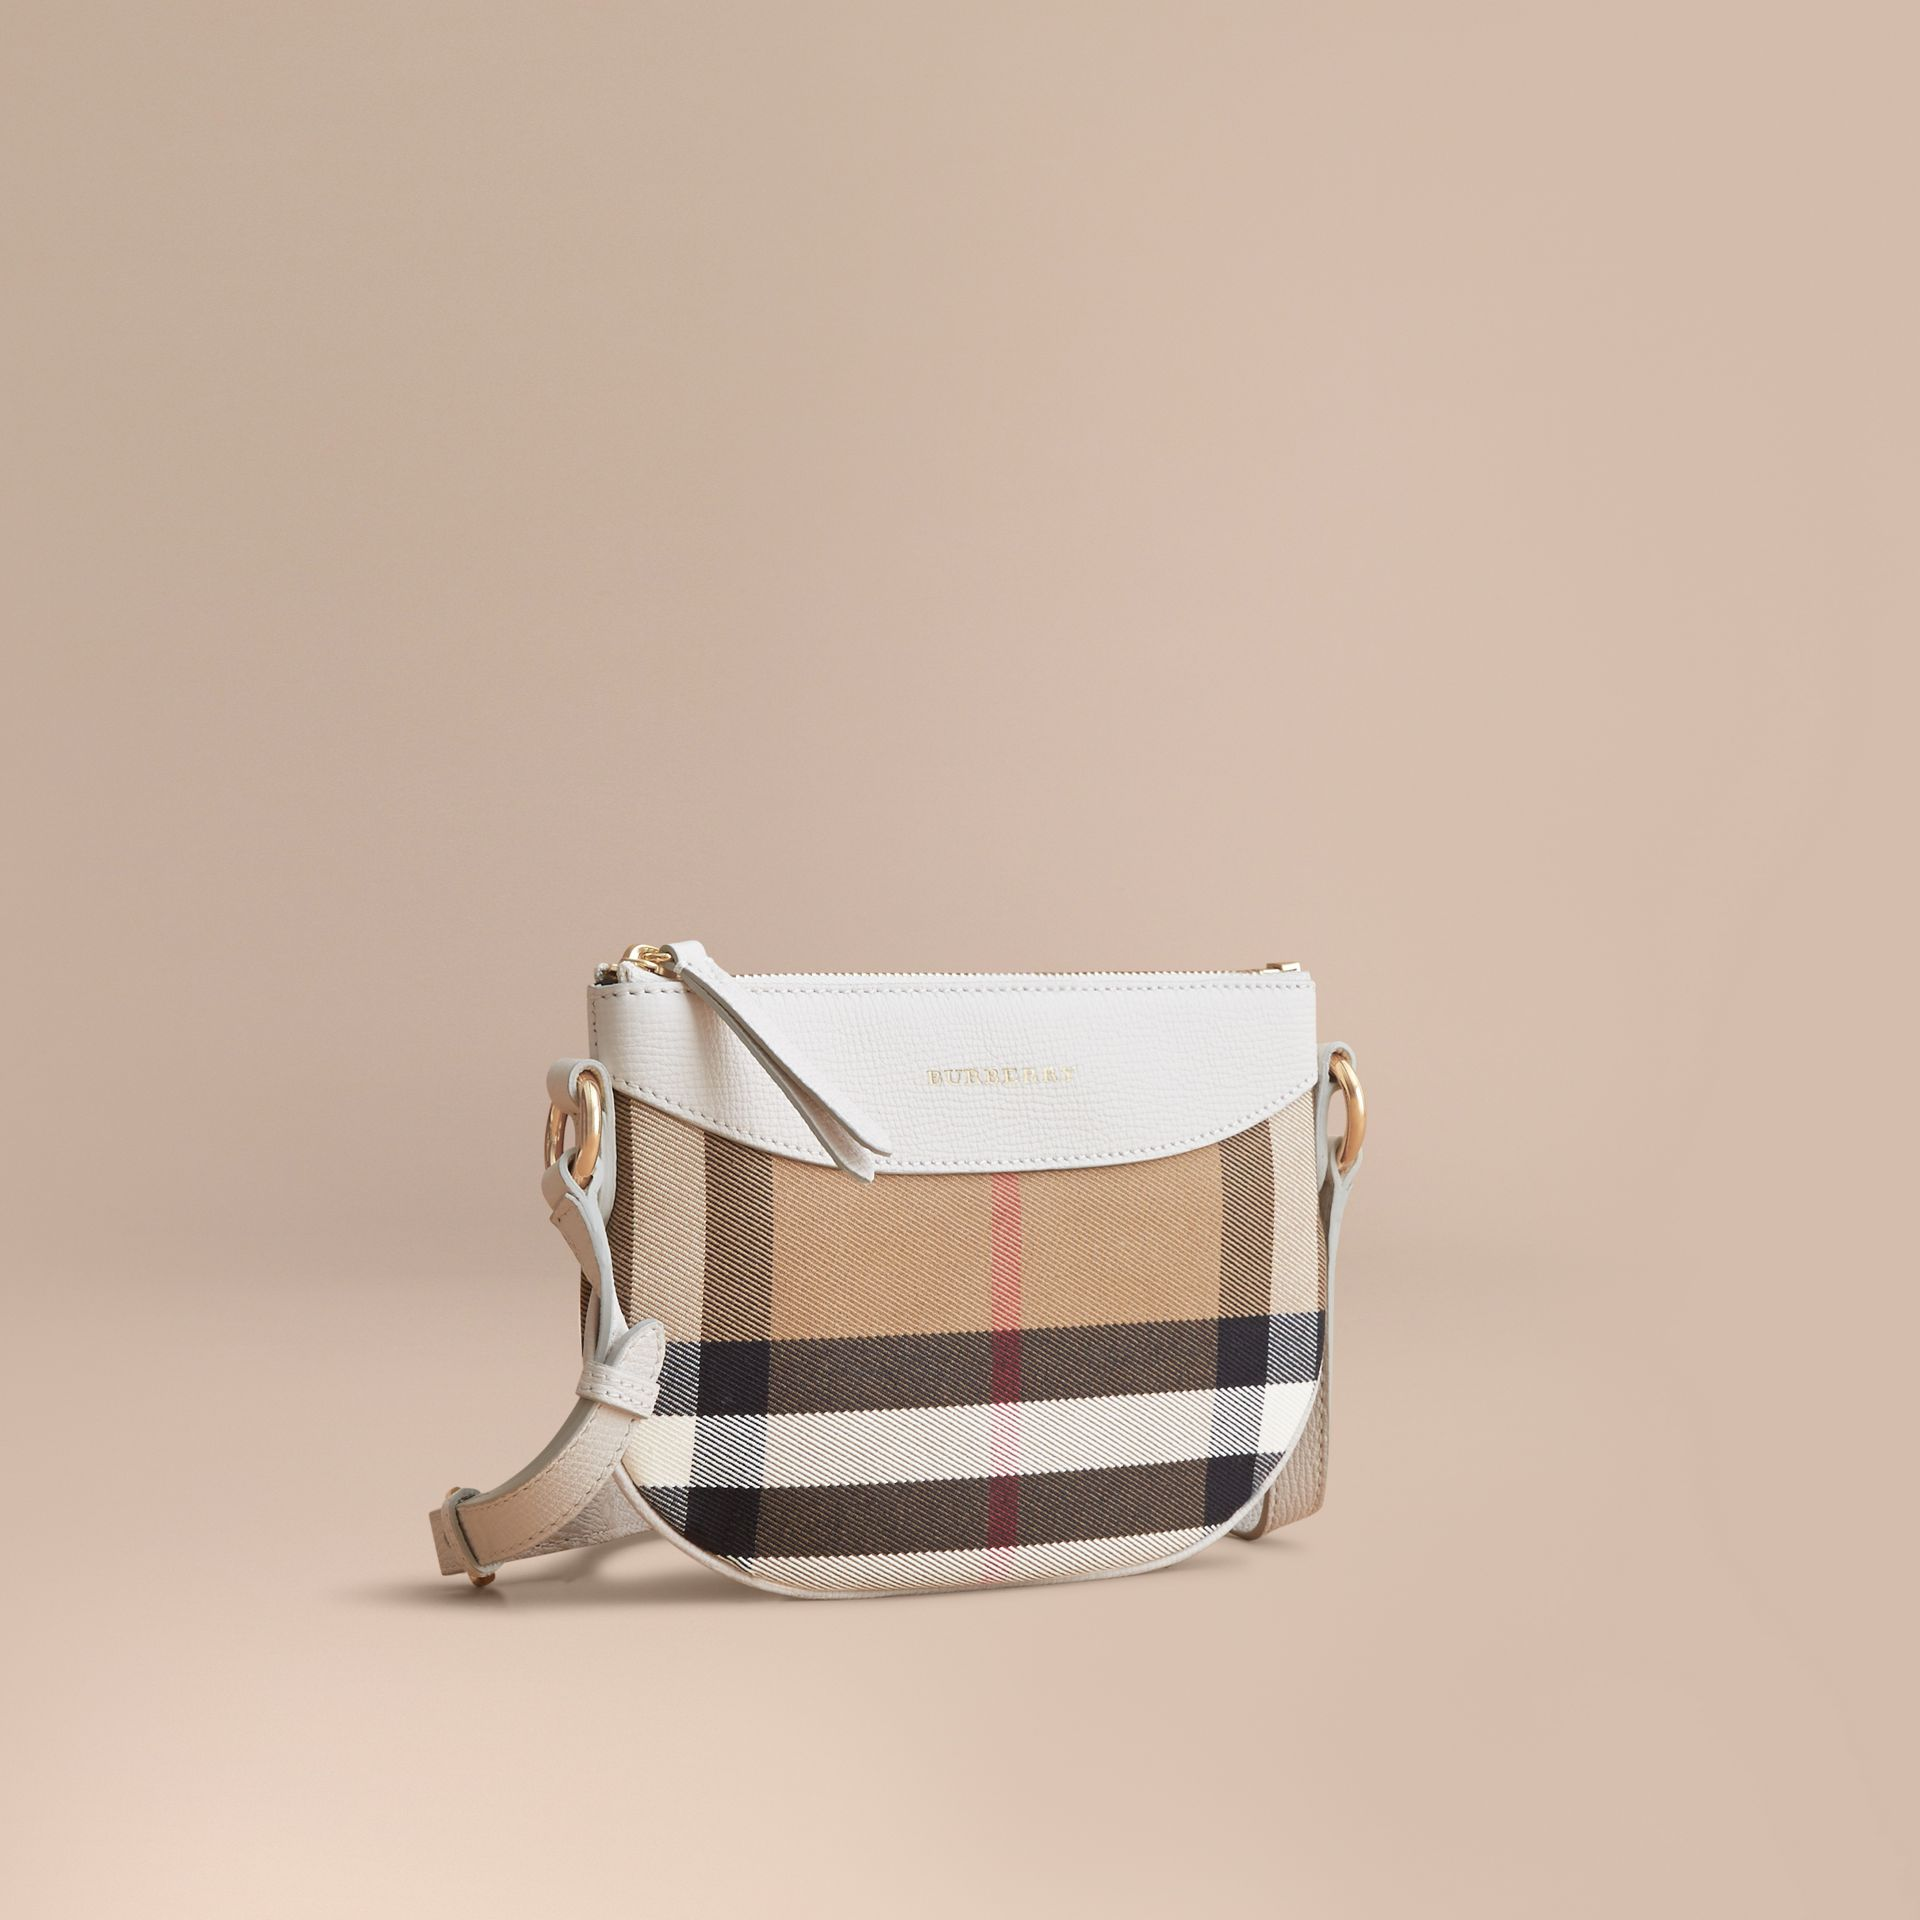 House Check and Leather Crossbody Bag Natural - gallery image 1